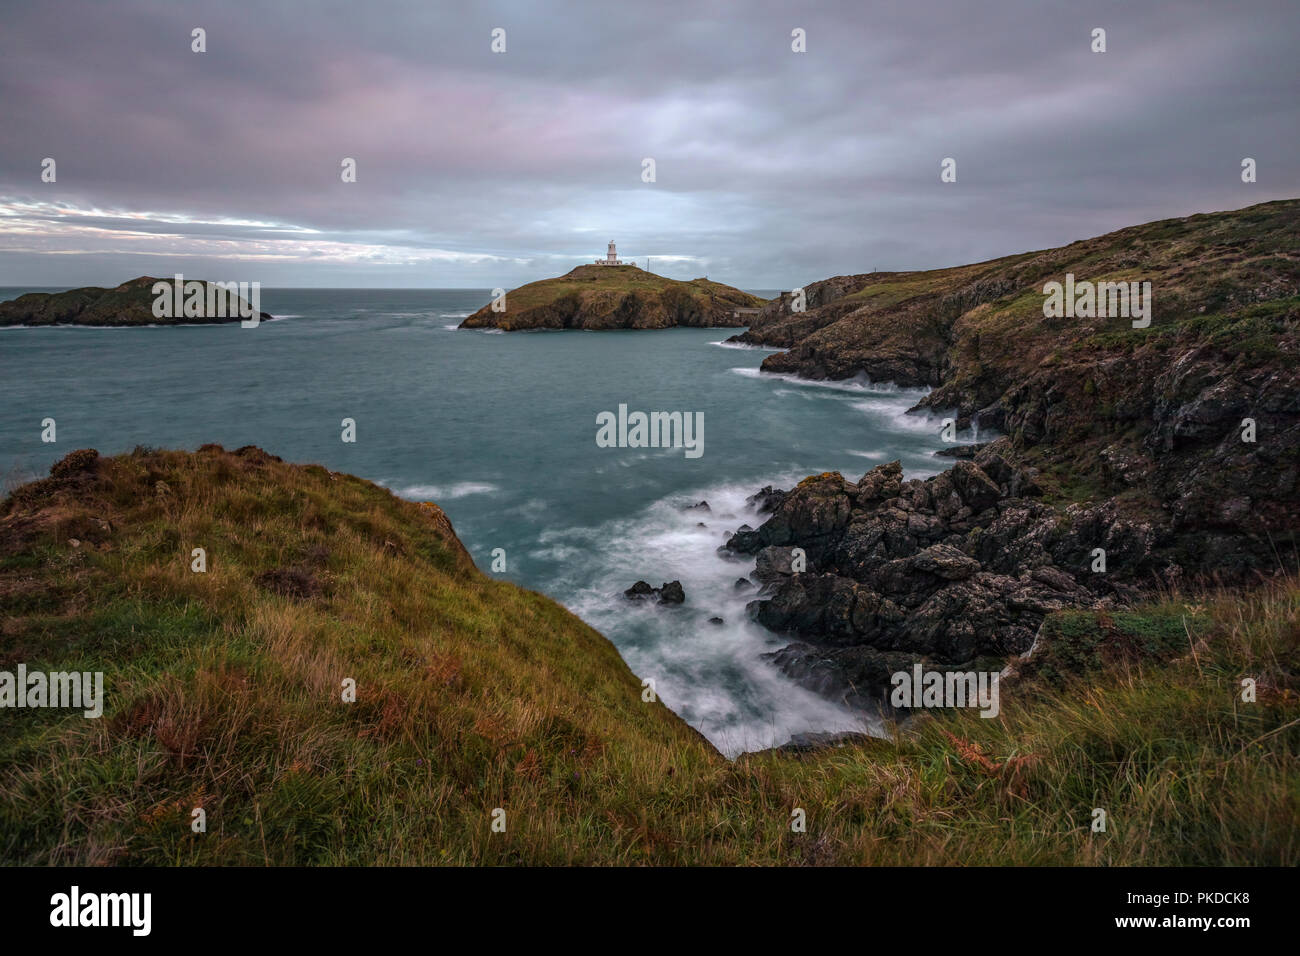 Strumble Head Lighthouse, Fishguard, Pembrokeshire, Wales, UK, Europe - Stock Image